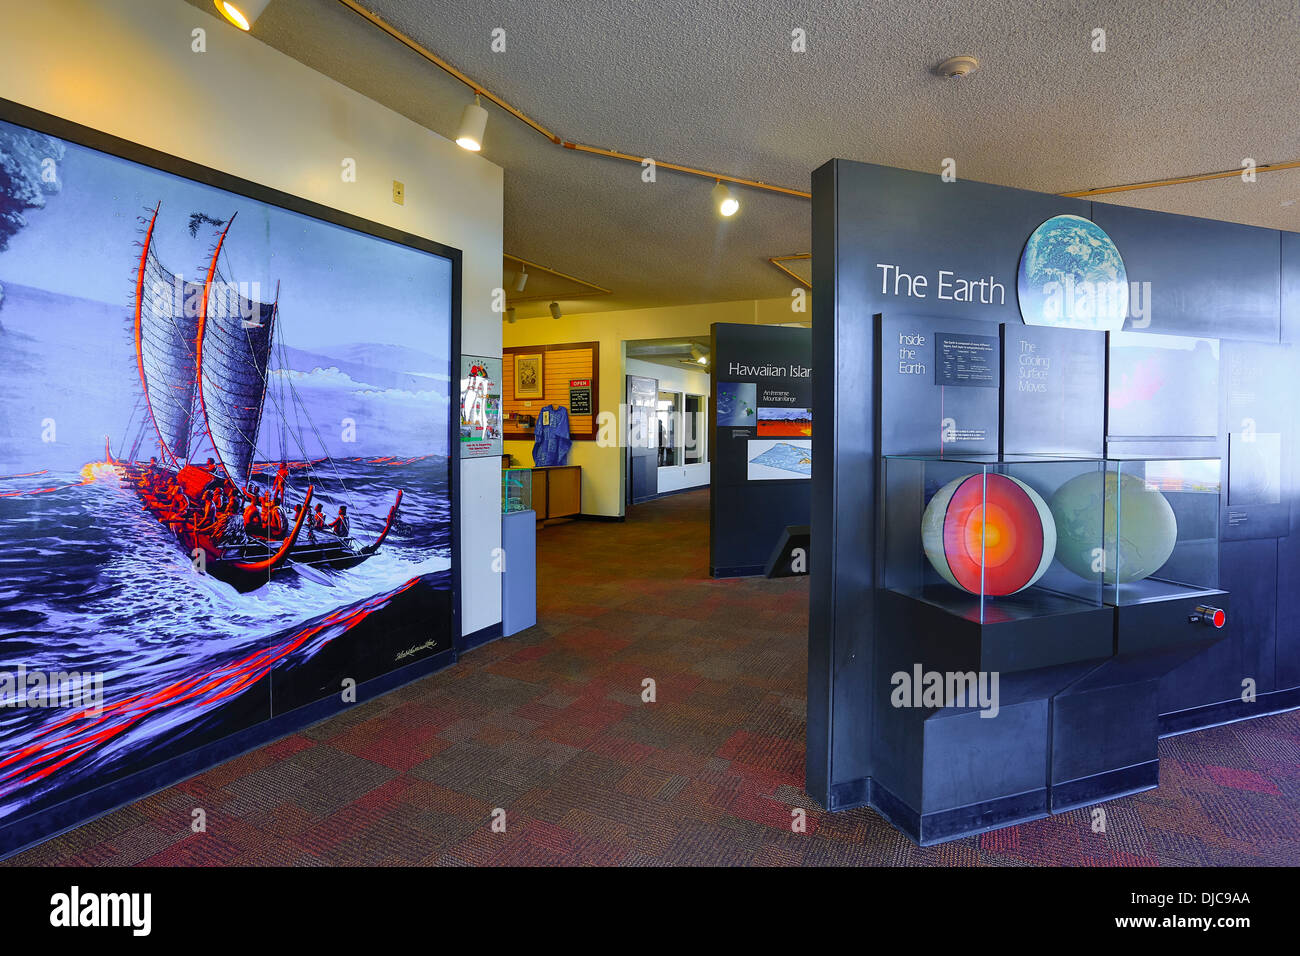 Jagger Museum, Halemaumau Crater, Kilauea Volcano, HVNP, Big Island of Hawaii Stock Photo